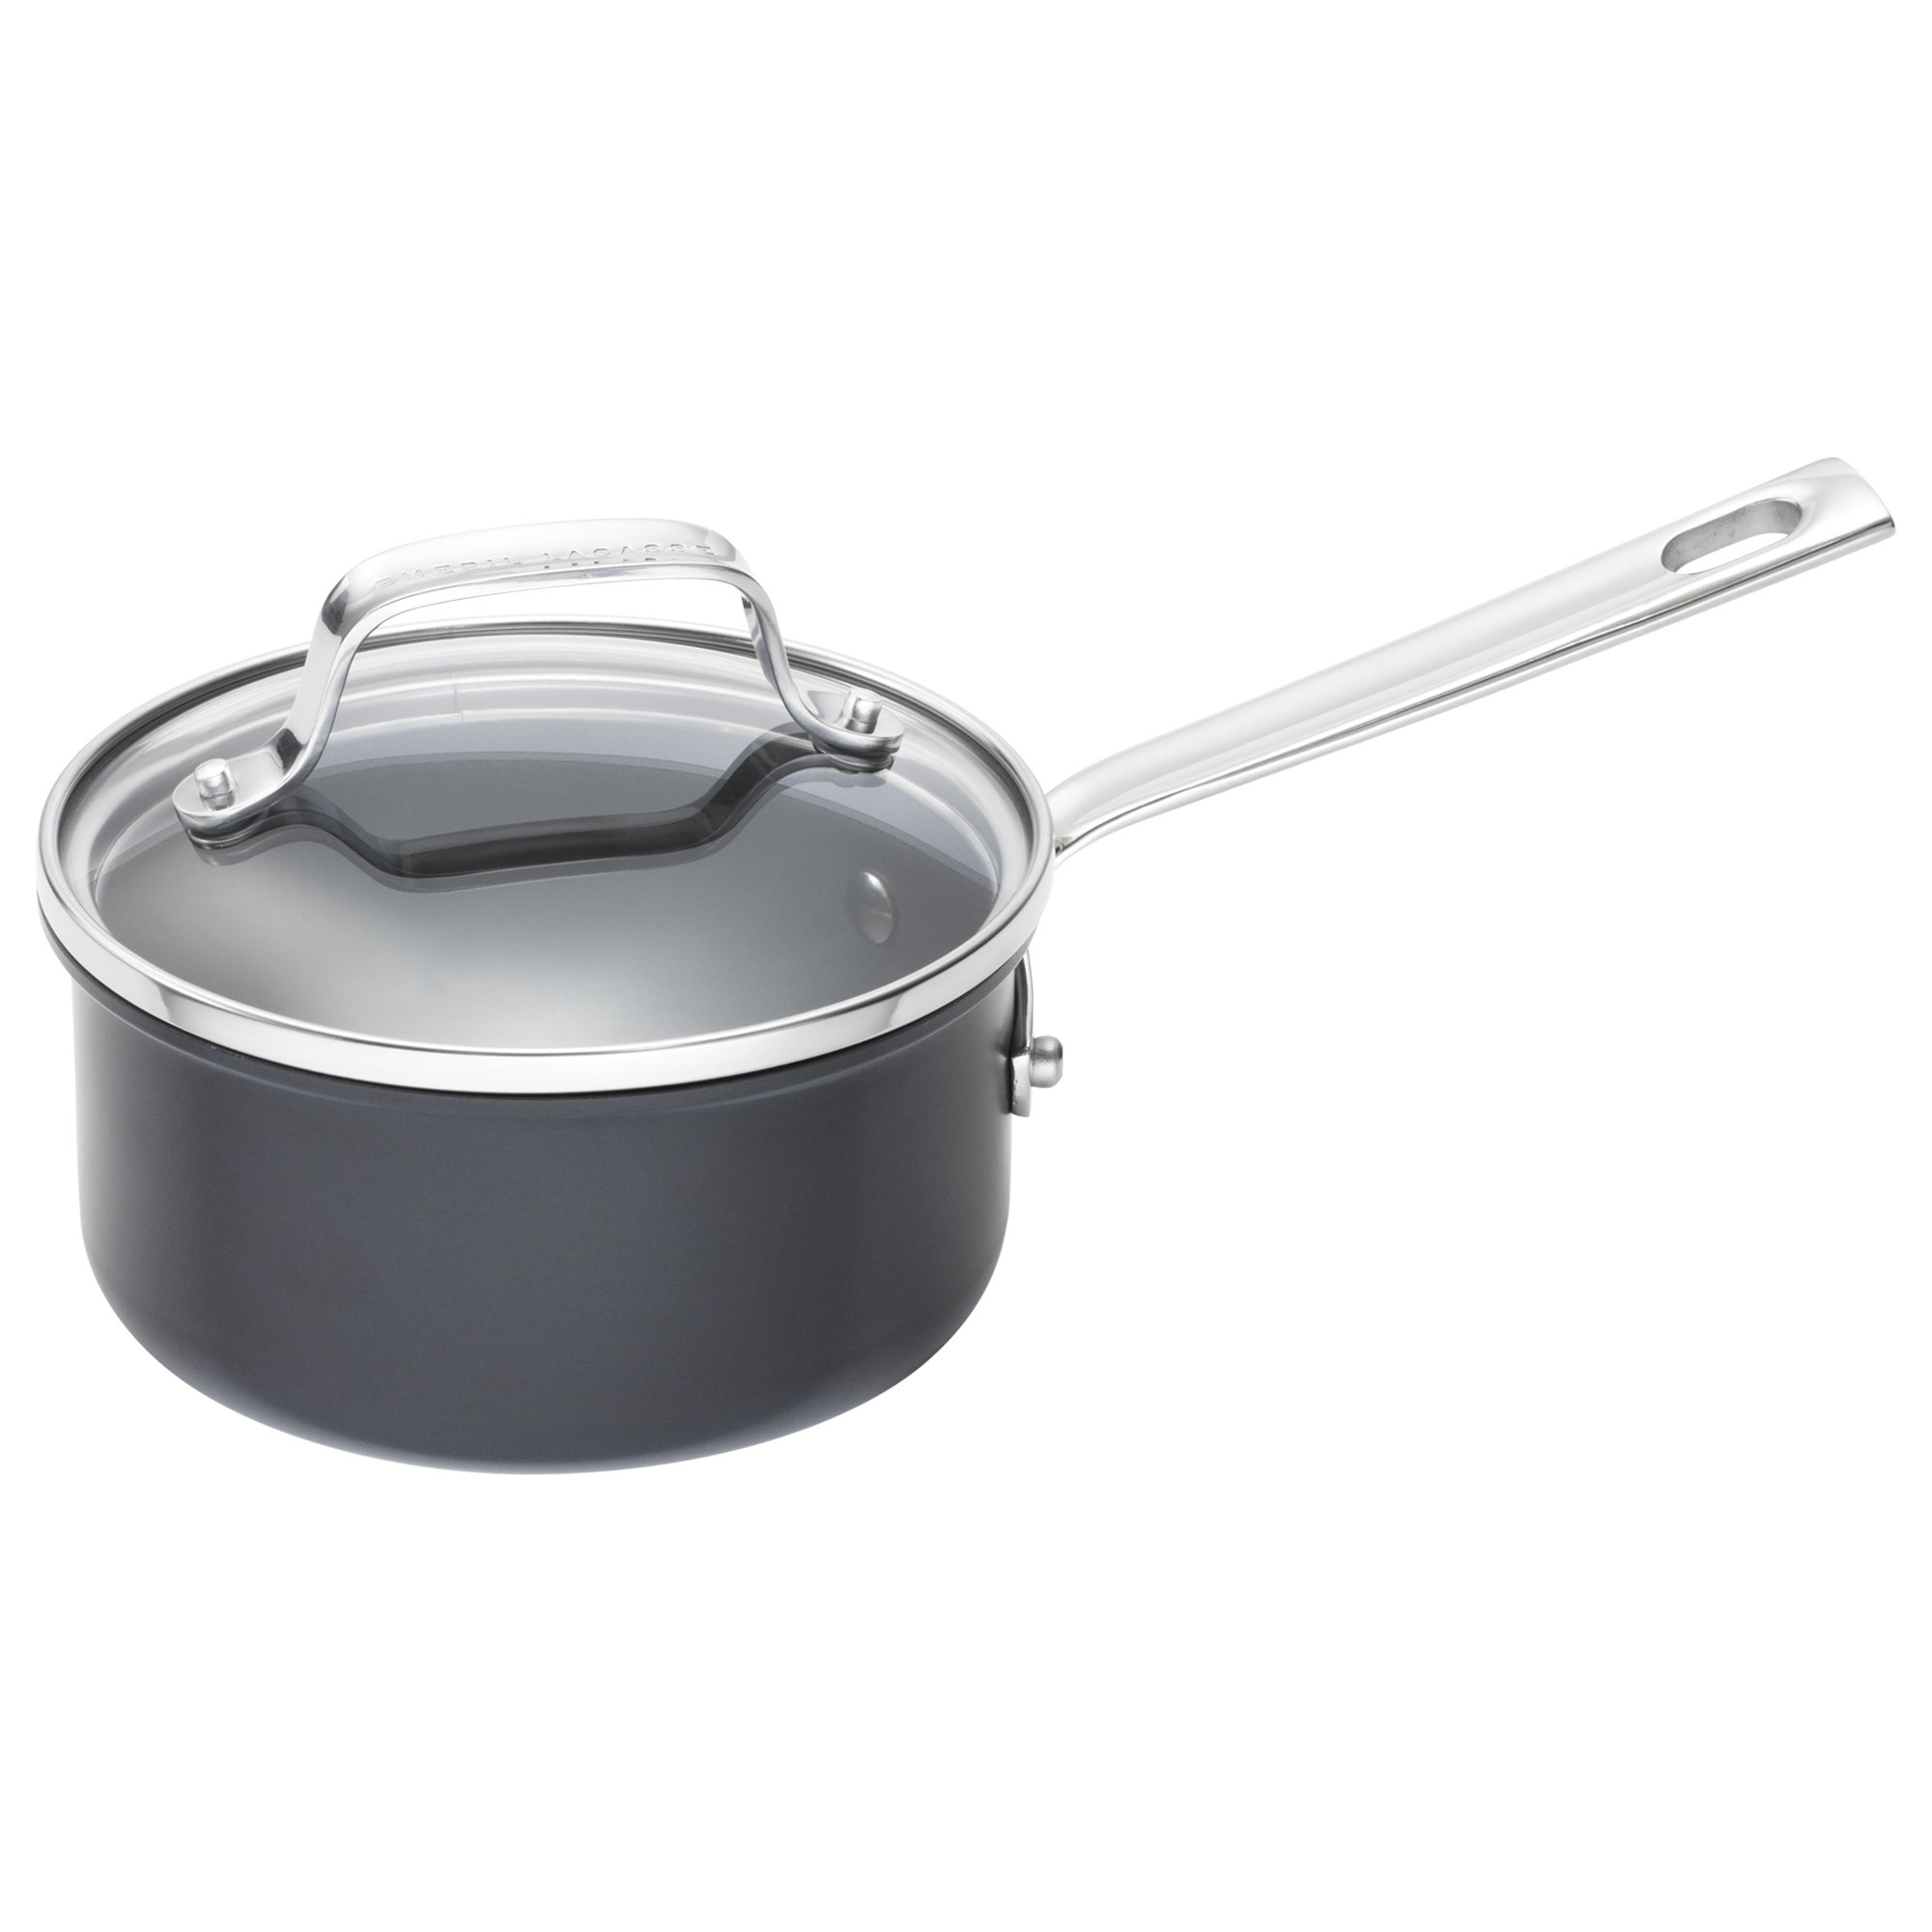 Emeril Lagasse 62926 Dishwasher safe Nonstick Hard Anodized Saucepan, 1-Quart,Gray